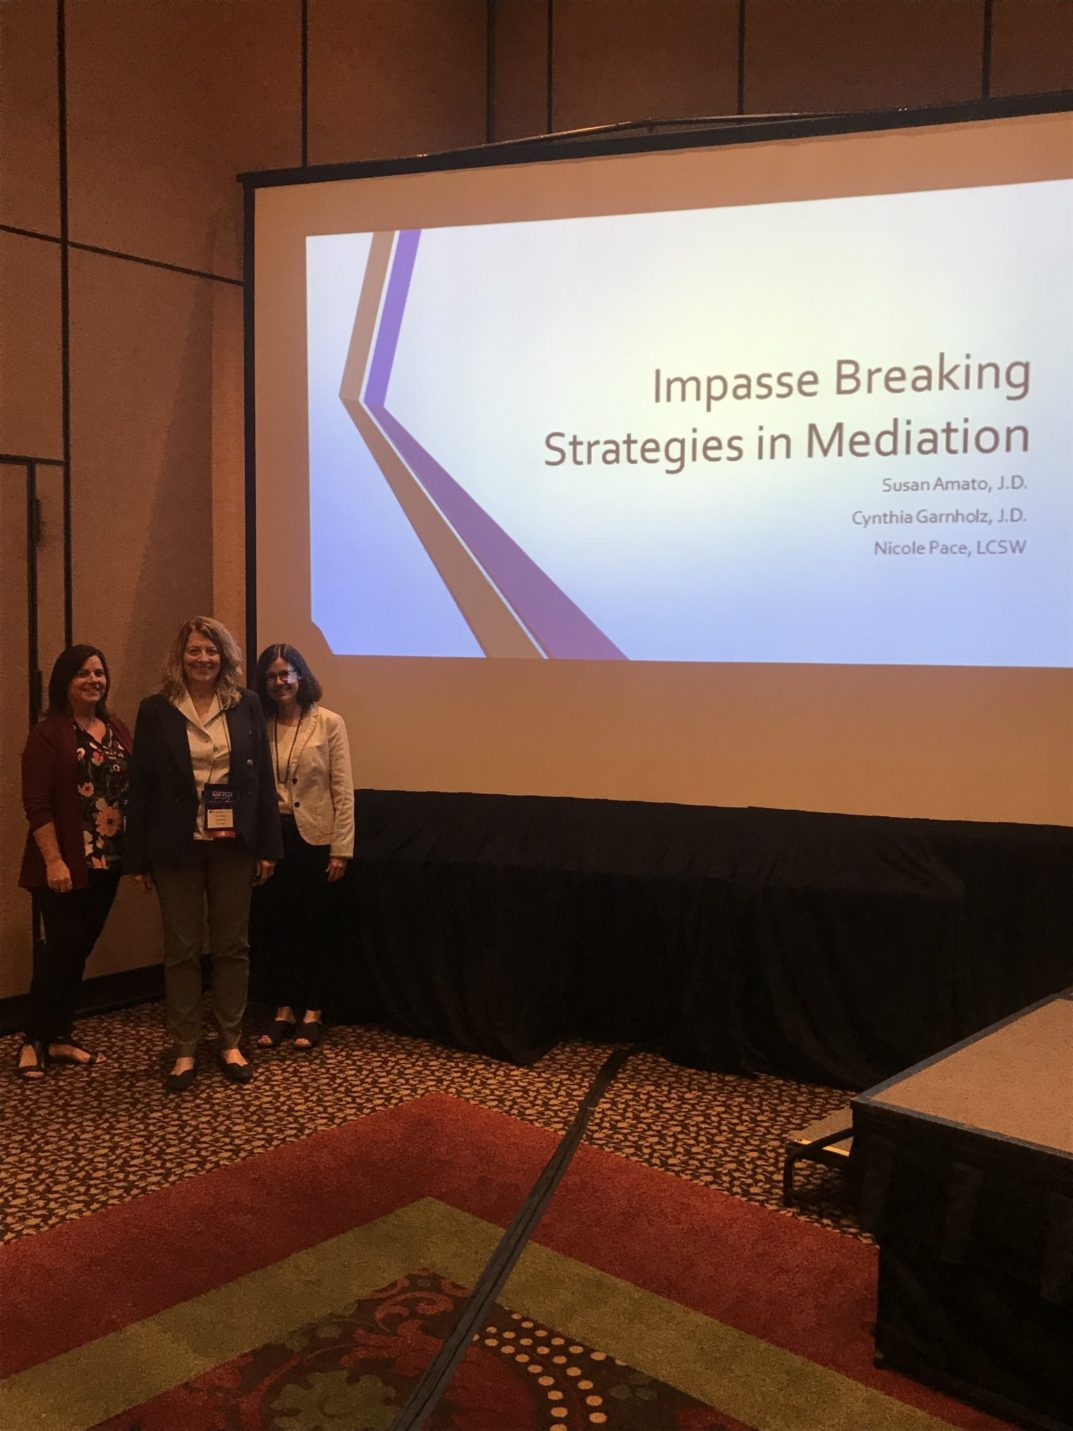 Presentation: Impasse Breaking Strategies in Mediation